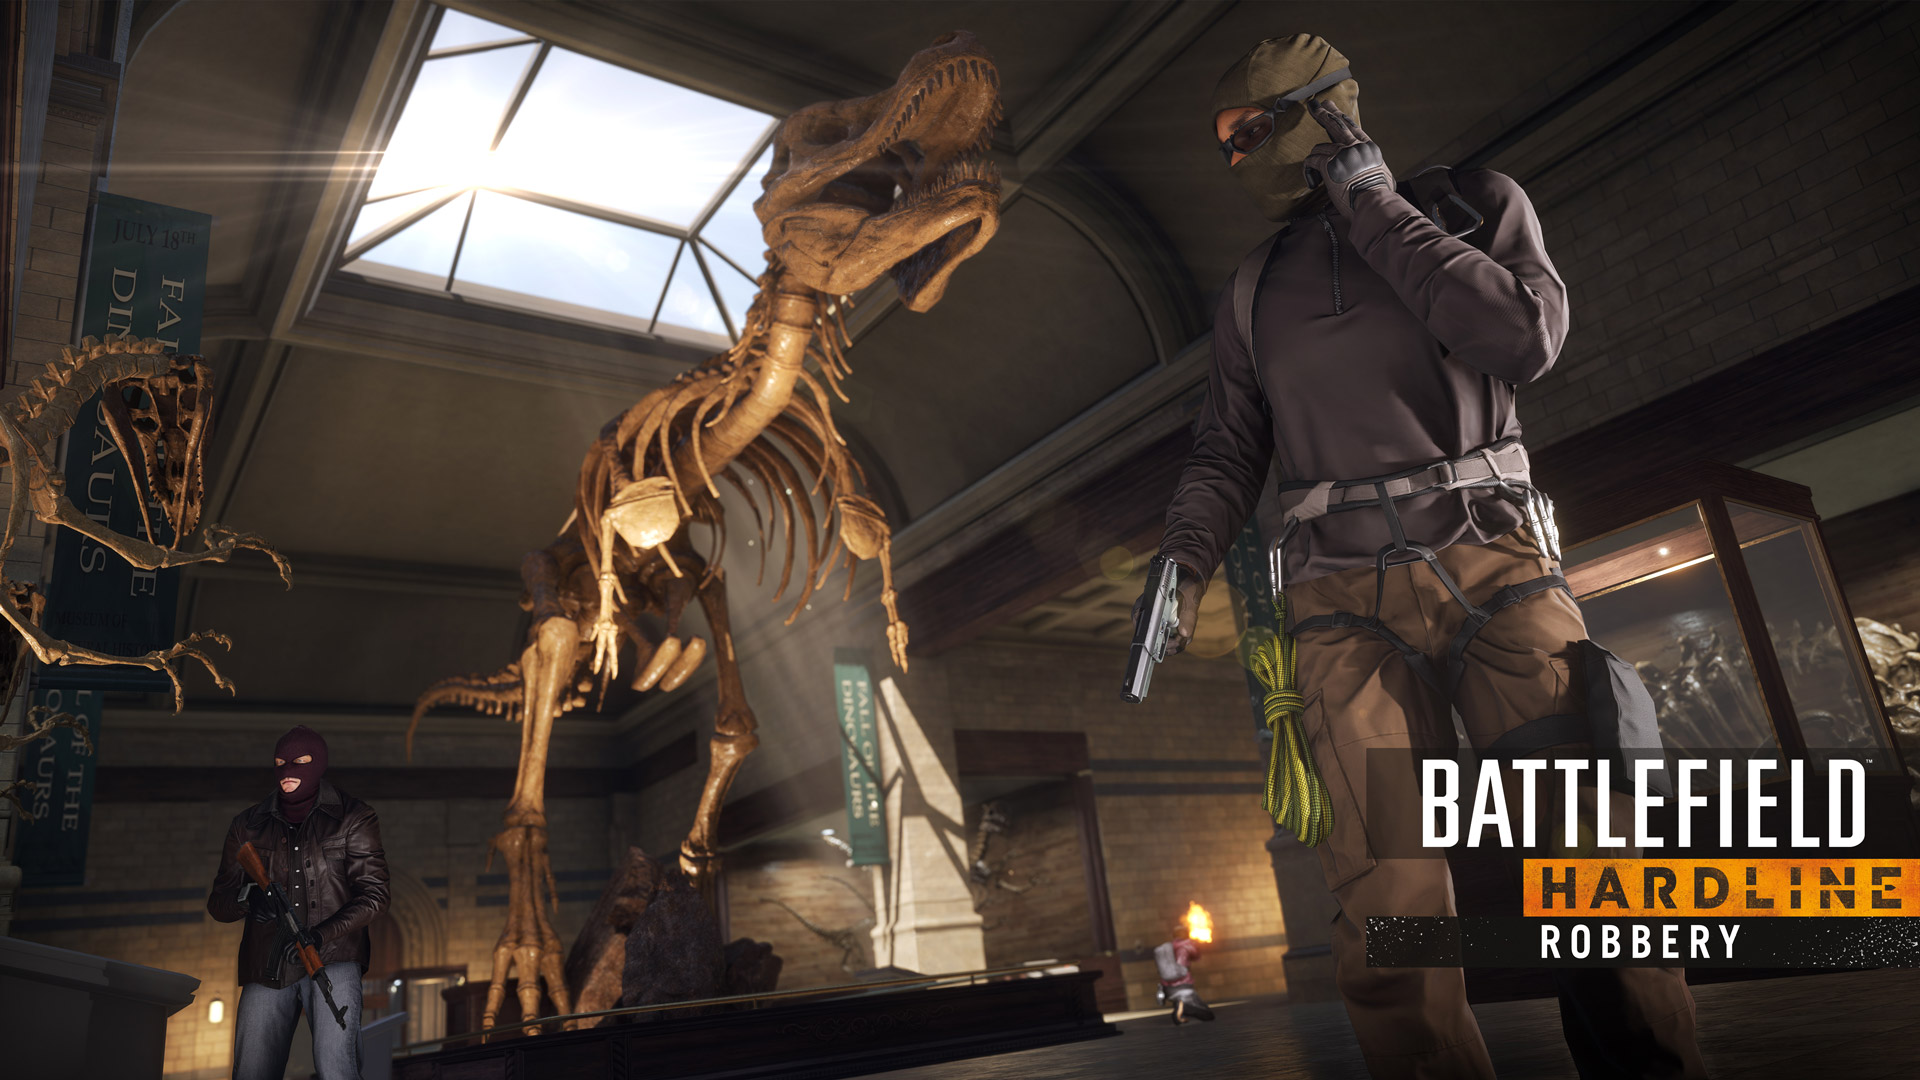 Battlefield Hardline Robbery Dlc Revealed Is All About